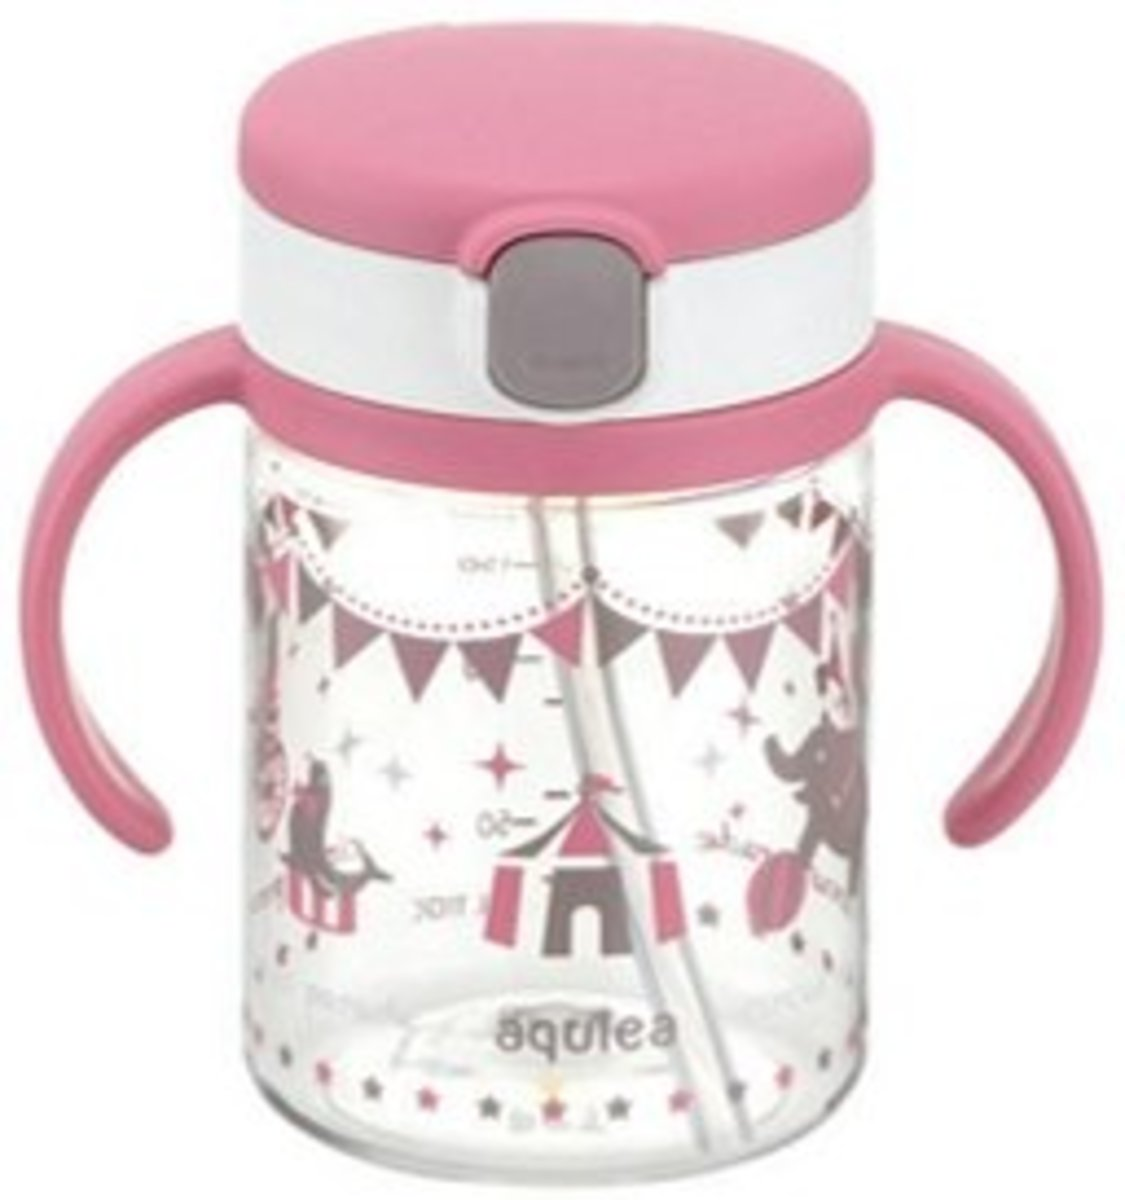 From 7 months Aqulea straw style drinking cup (200ml) P